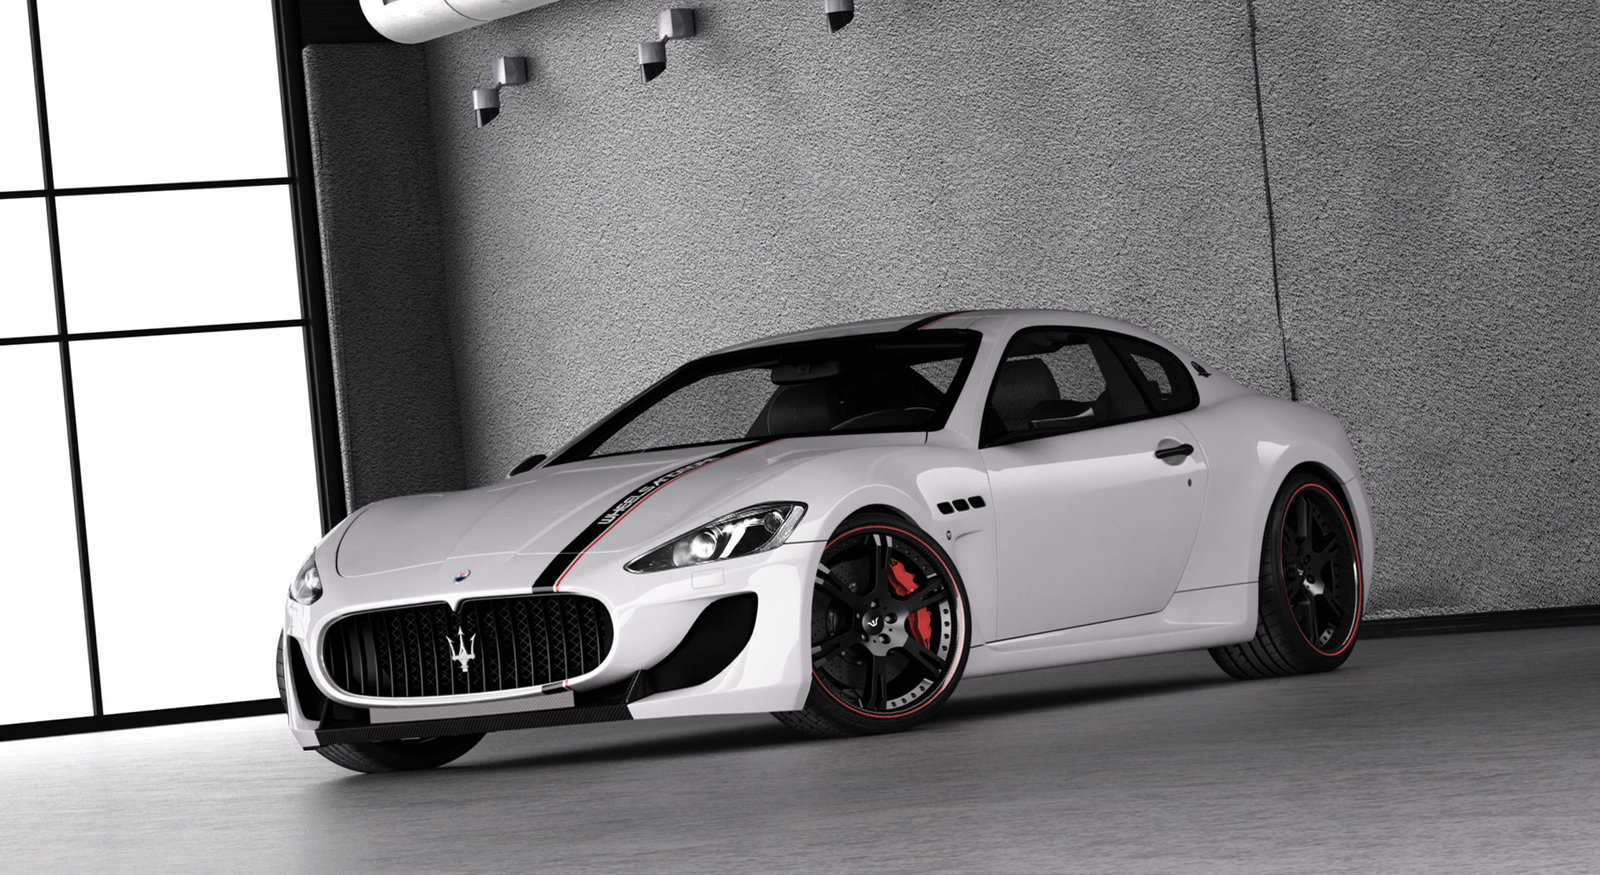 http://pictures.topspeed.com/IMG/crop/201305/maserati-mc-stradale-1_1600x0w.jpg